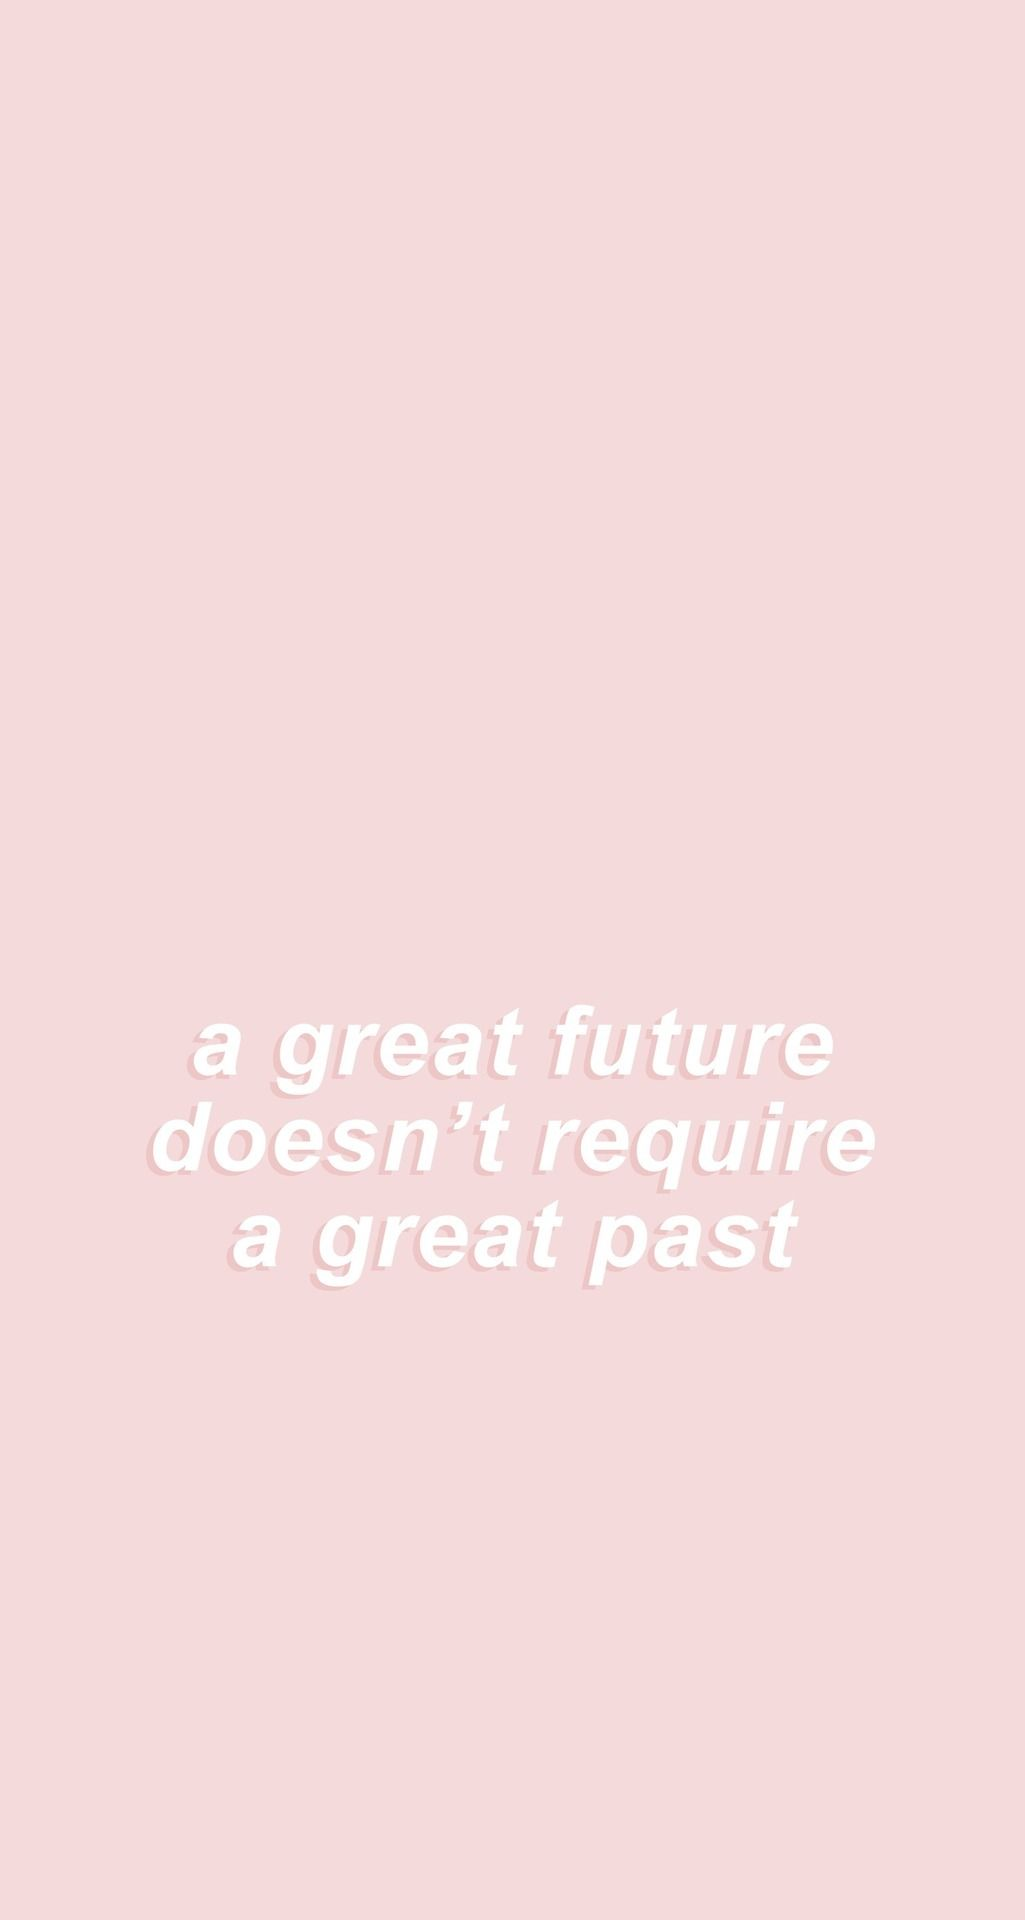 Pastel Quotes Wallpapers Top Free Pastel Quotes Backgrounds Wallpaperaccess